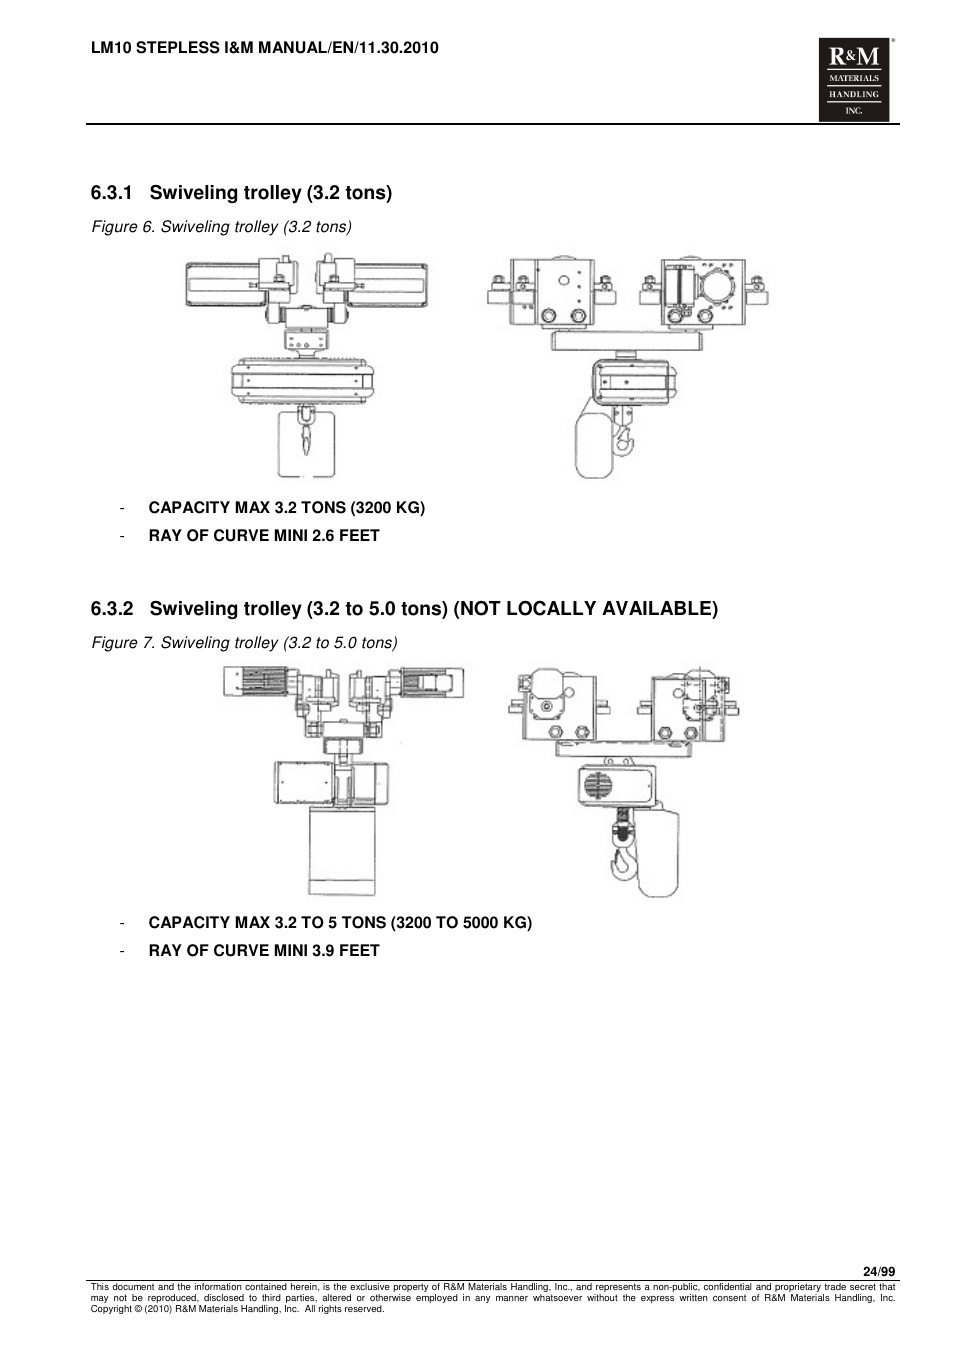 hight resolution of 1 swiveling trolley 3 2 tons r m materials handling electric chain hoists loadmate chain hoist lm 10 stepless user manual page 24 99